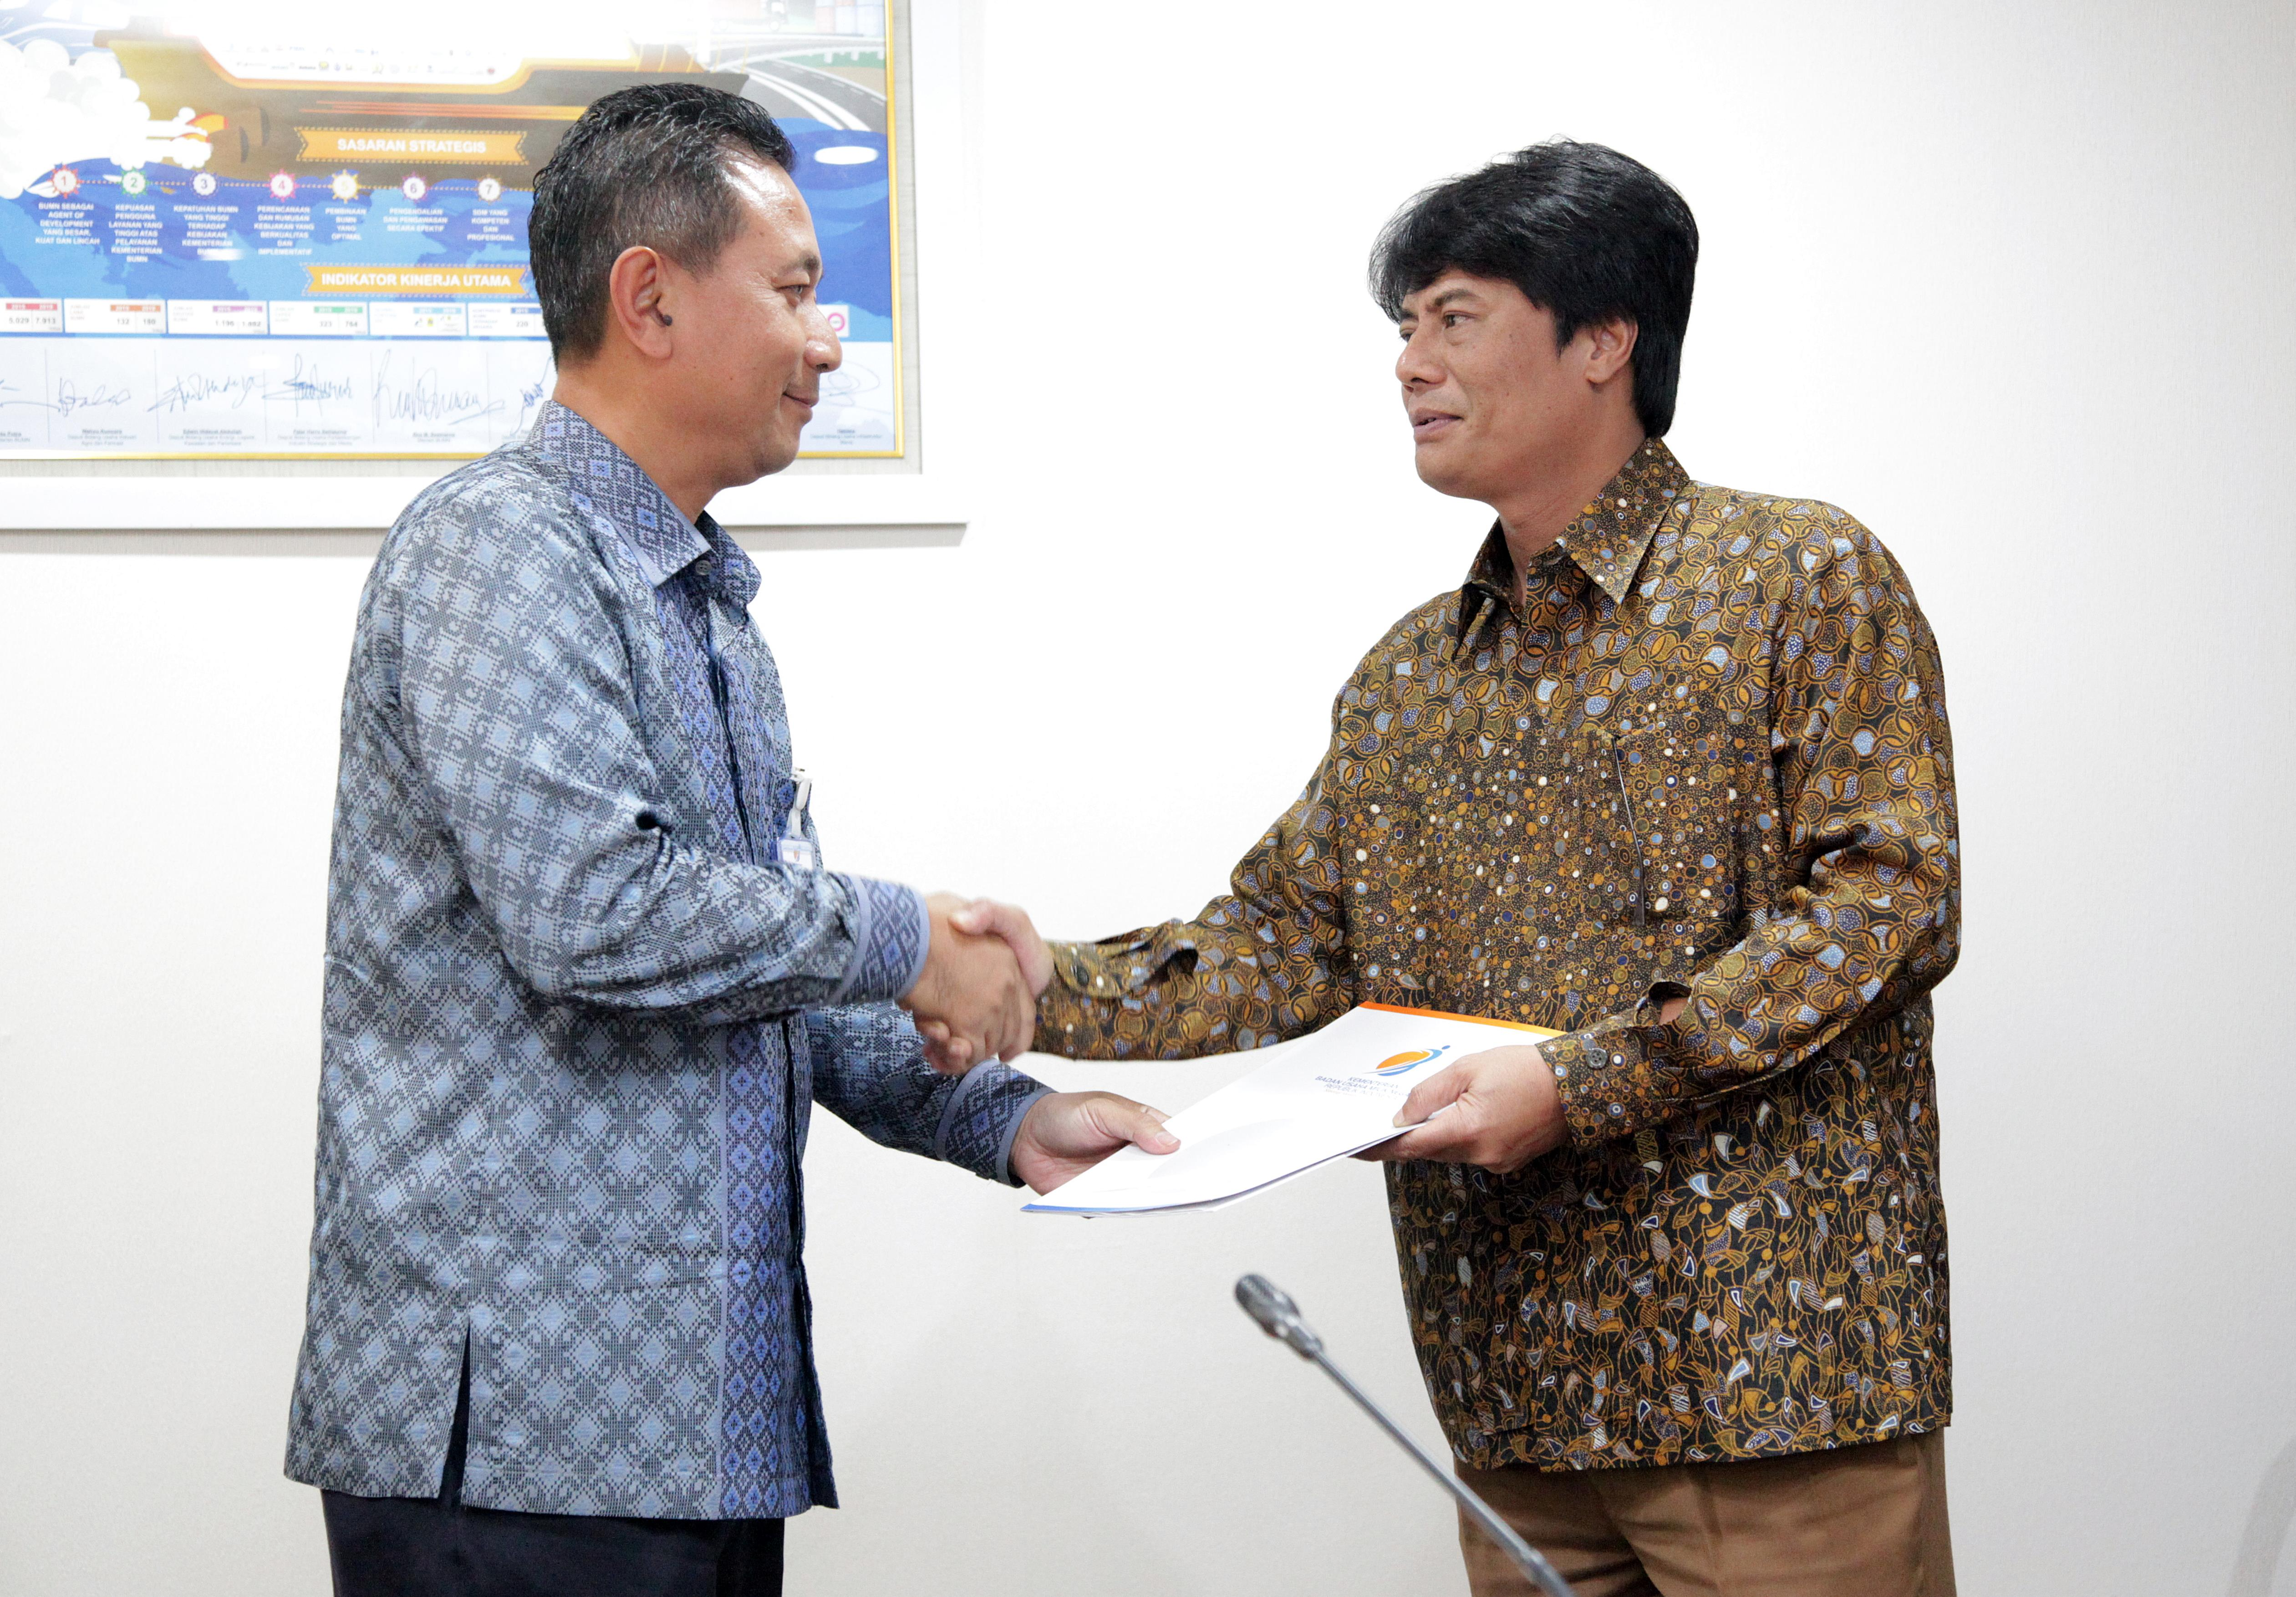 Deputy Minister of SOEs, Gatot Trihargo, hands over a copy of decree of the Minister of SOEs to the New President Director of PT Pertamina, Elia Massa Manik, at the Ministry of SOEs, Jakarta, Thursday (16/3) afternoon.